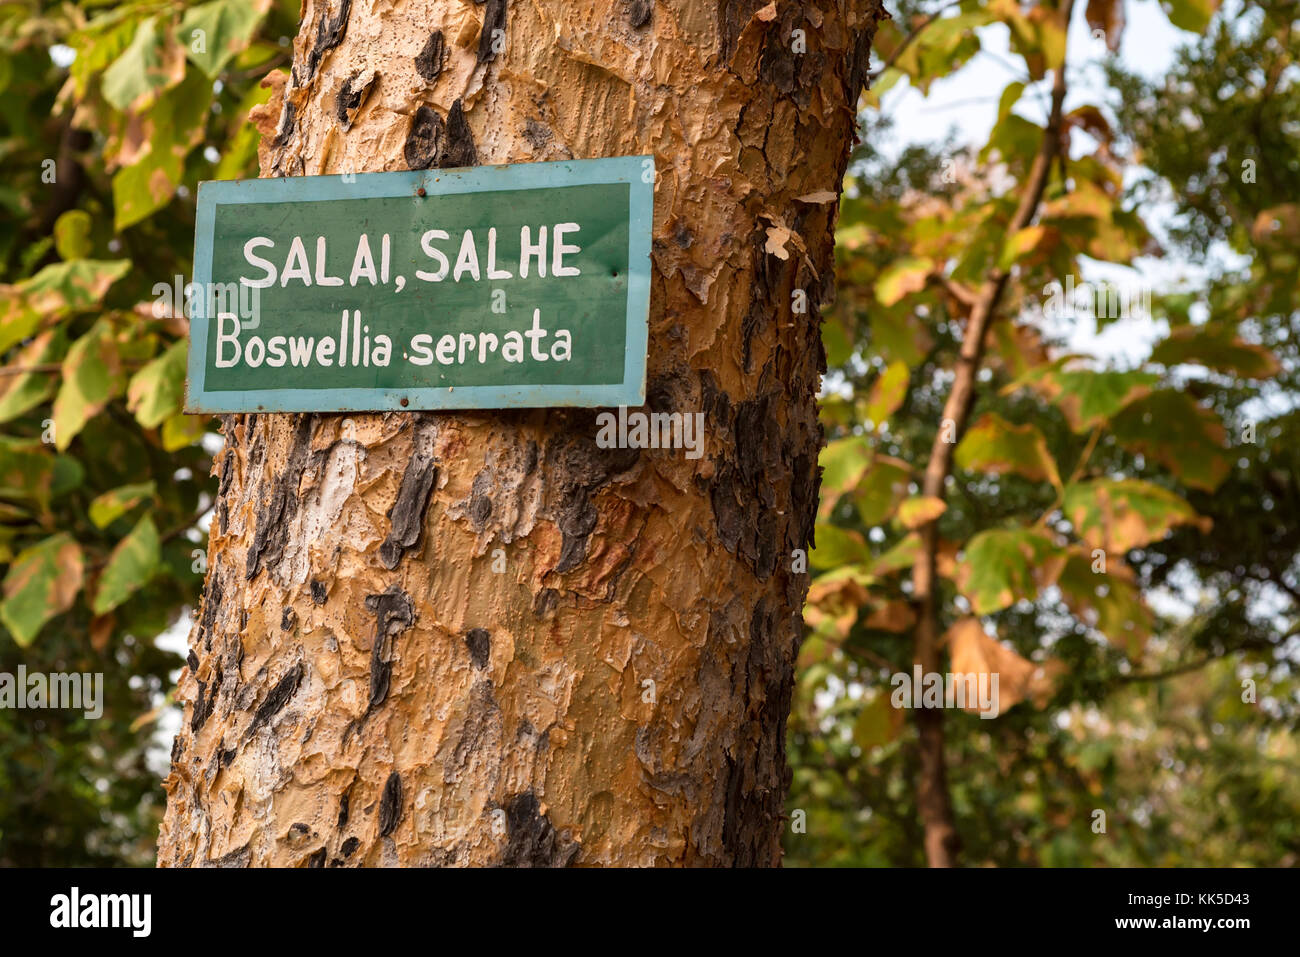 Boswellia serrata tree with plate with its name - Stock Image